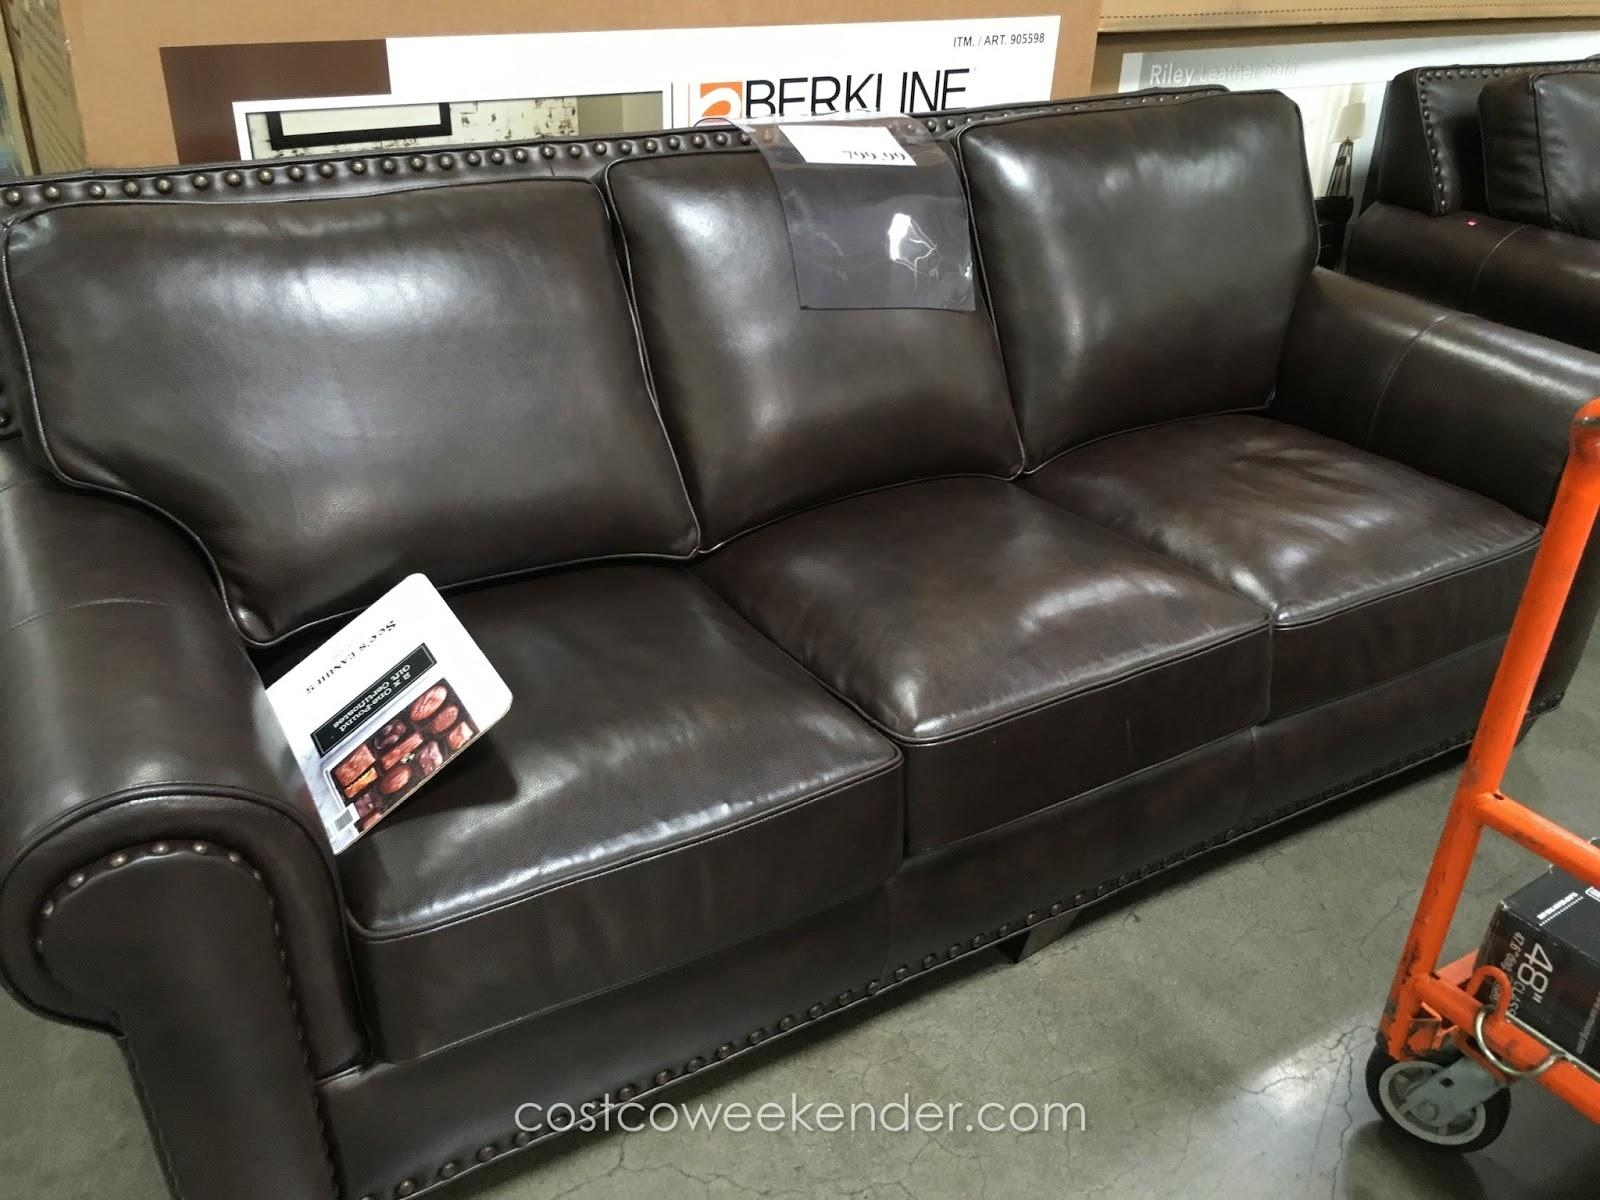 Furniture & Sofa: Enjoy Your Holiday With Costco Home Theater With Berkline Recliner Sofas (Image 4 of 20)